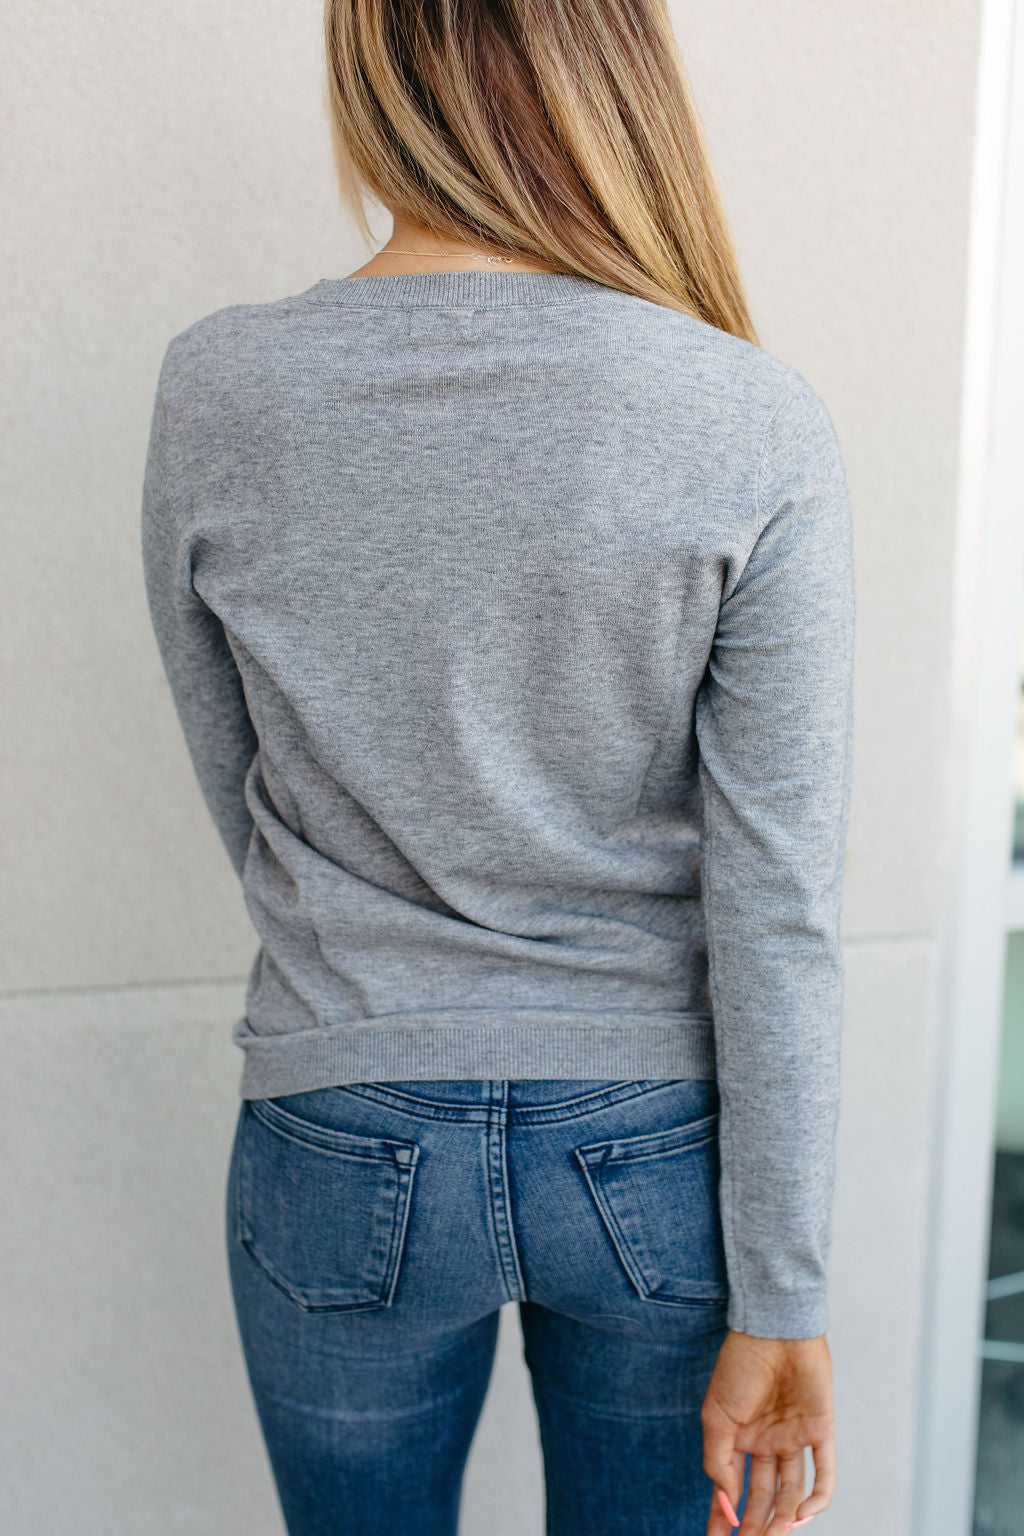 Ampersand Ave. Heather Grey Sweater